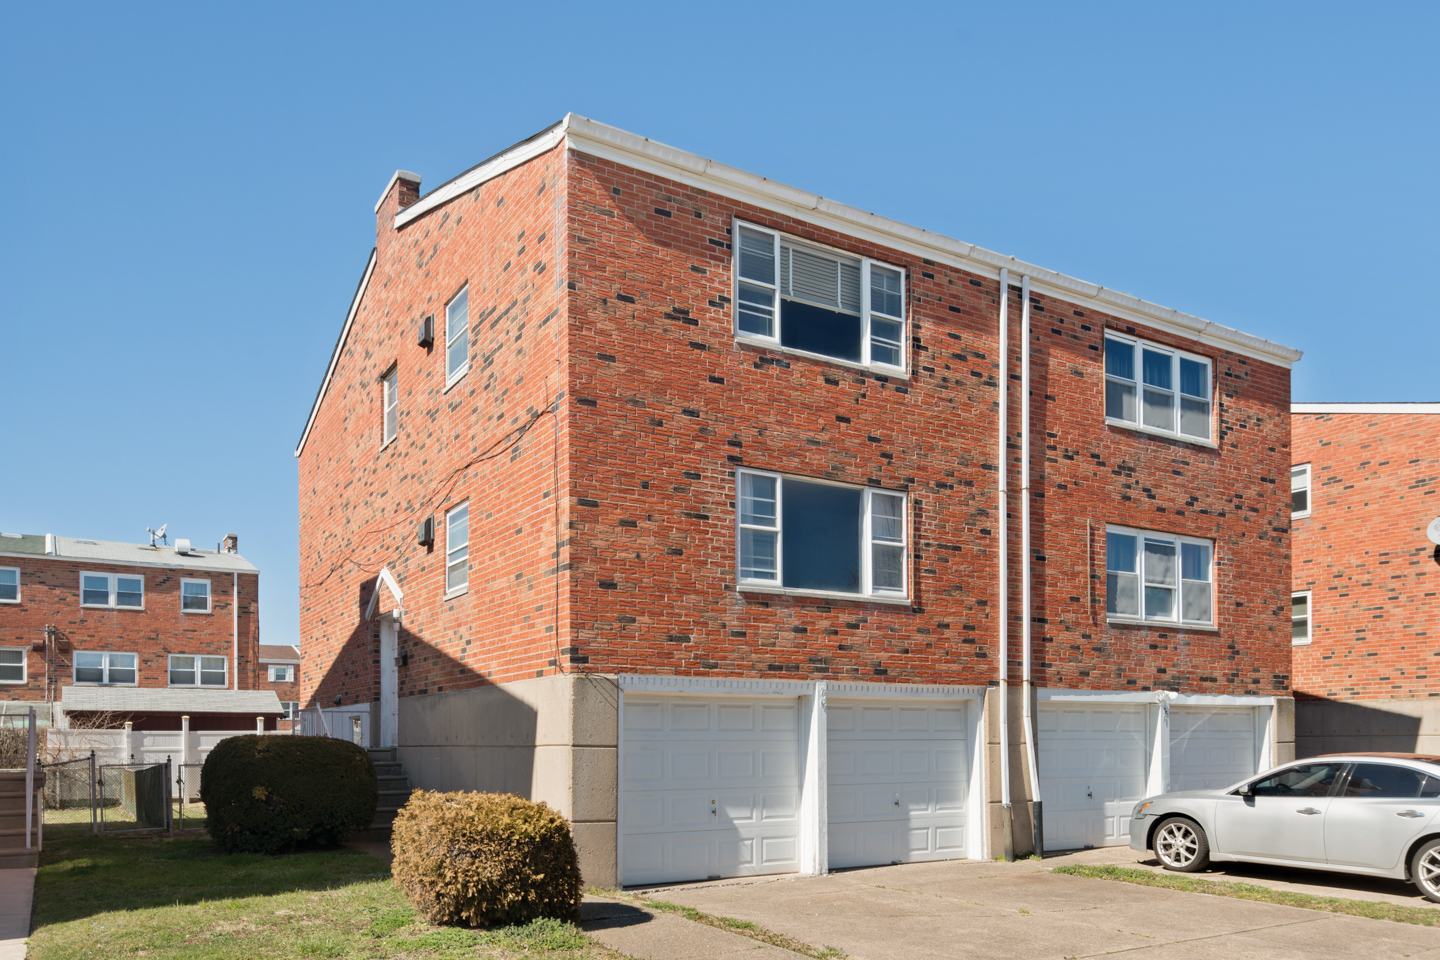 Sold | 7319 Sanderling Place - Philadelphia, PA 19153